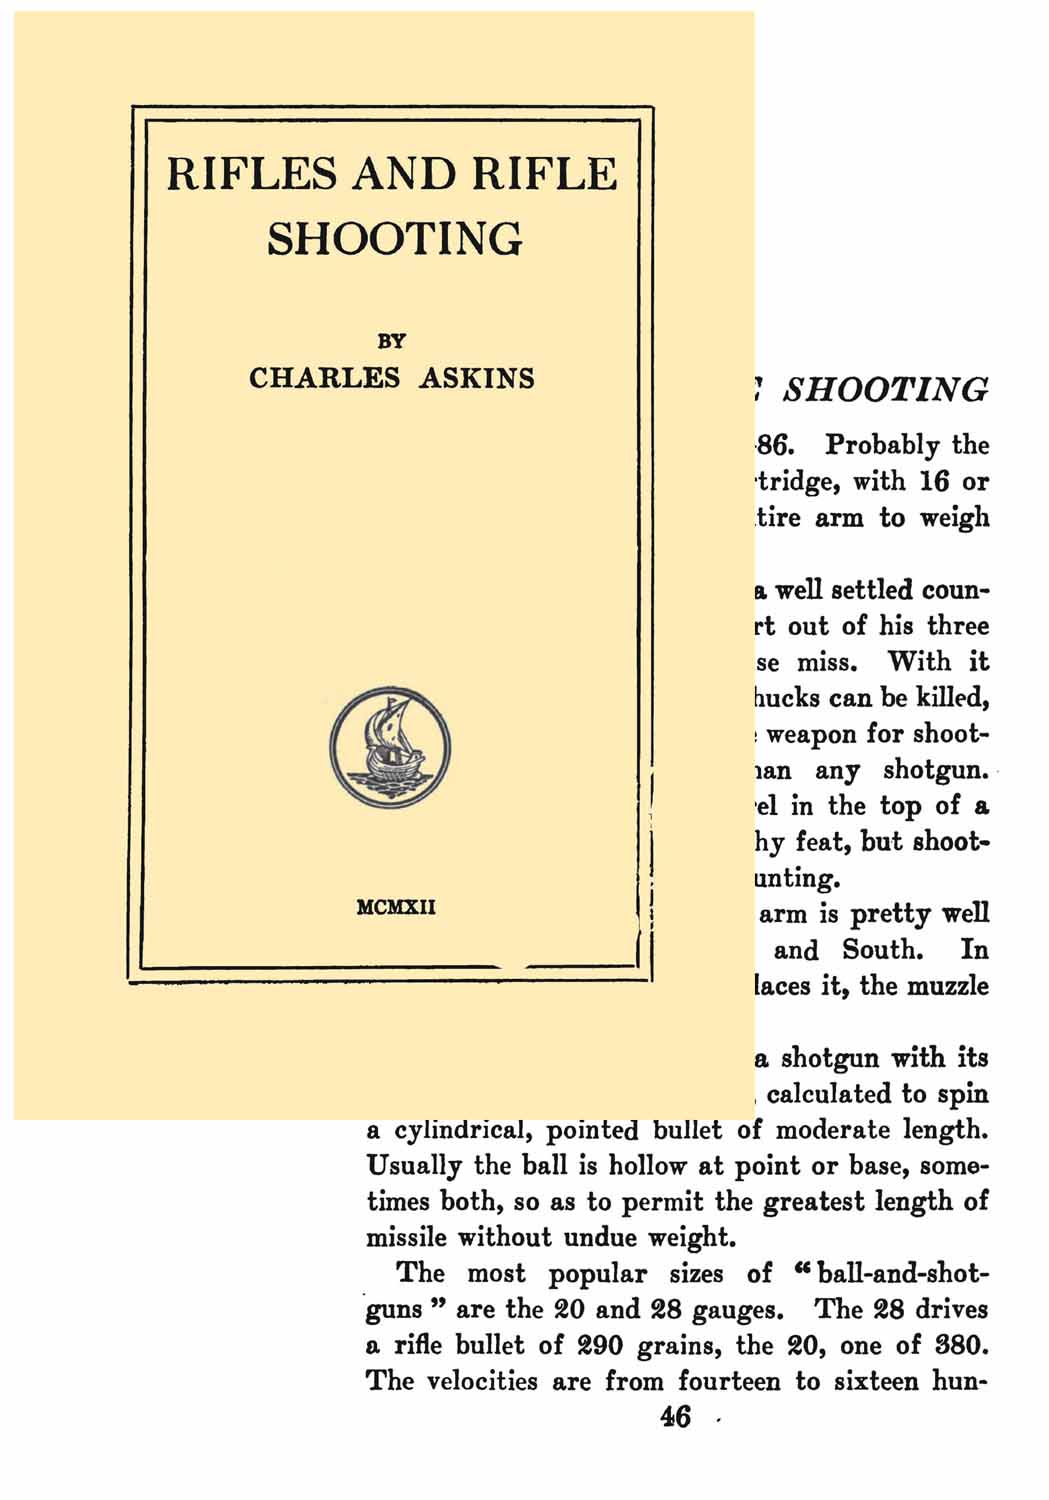 Rifles and Rifle Shooting 1912 Askins